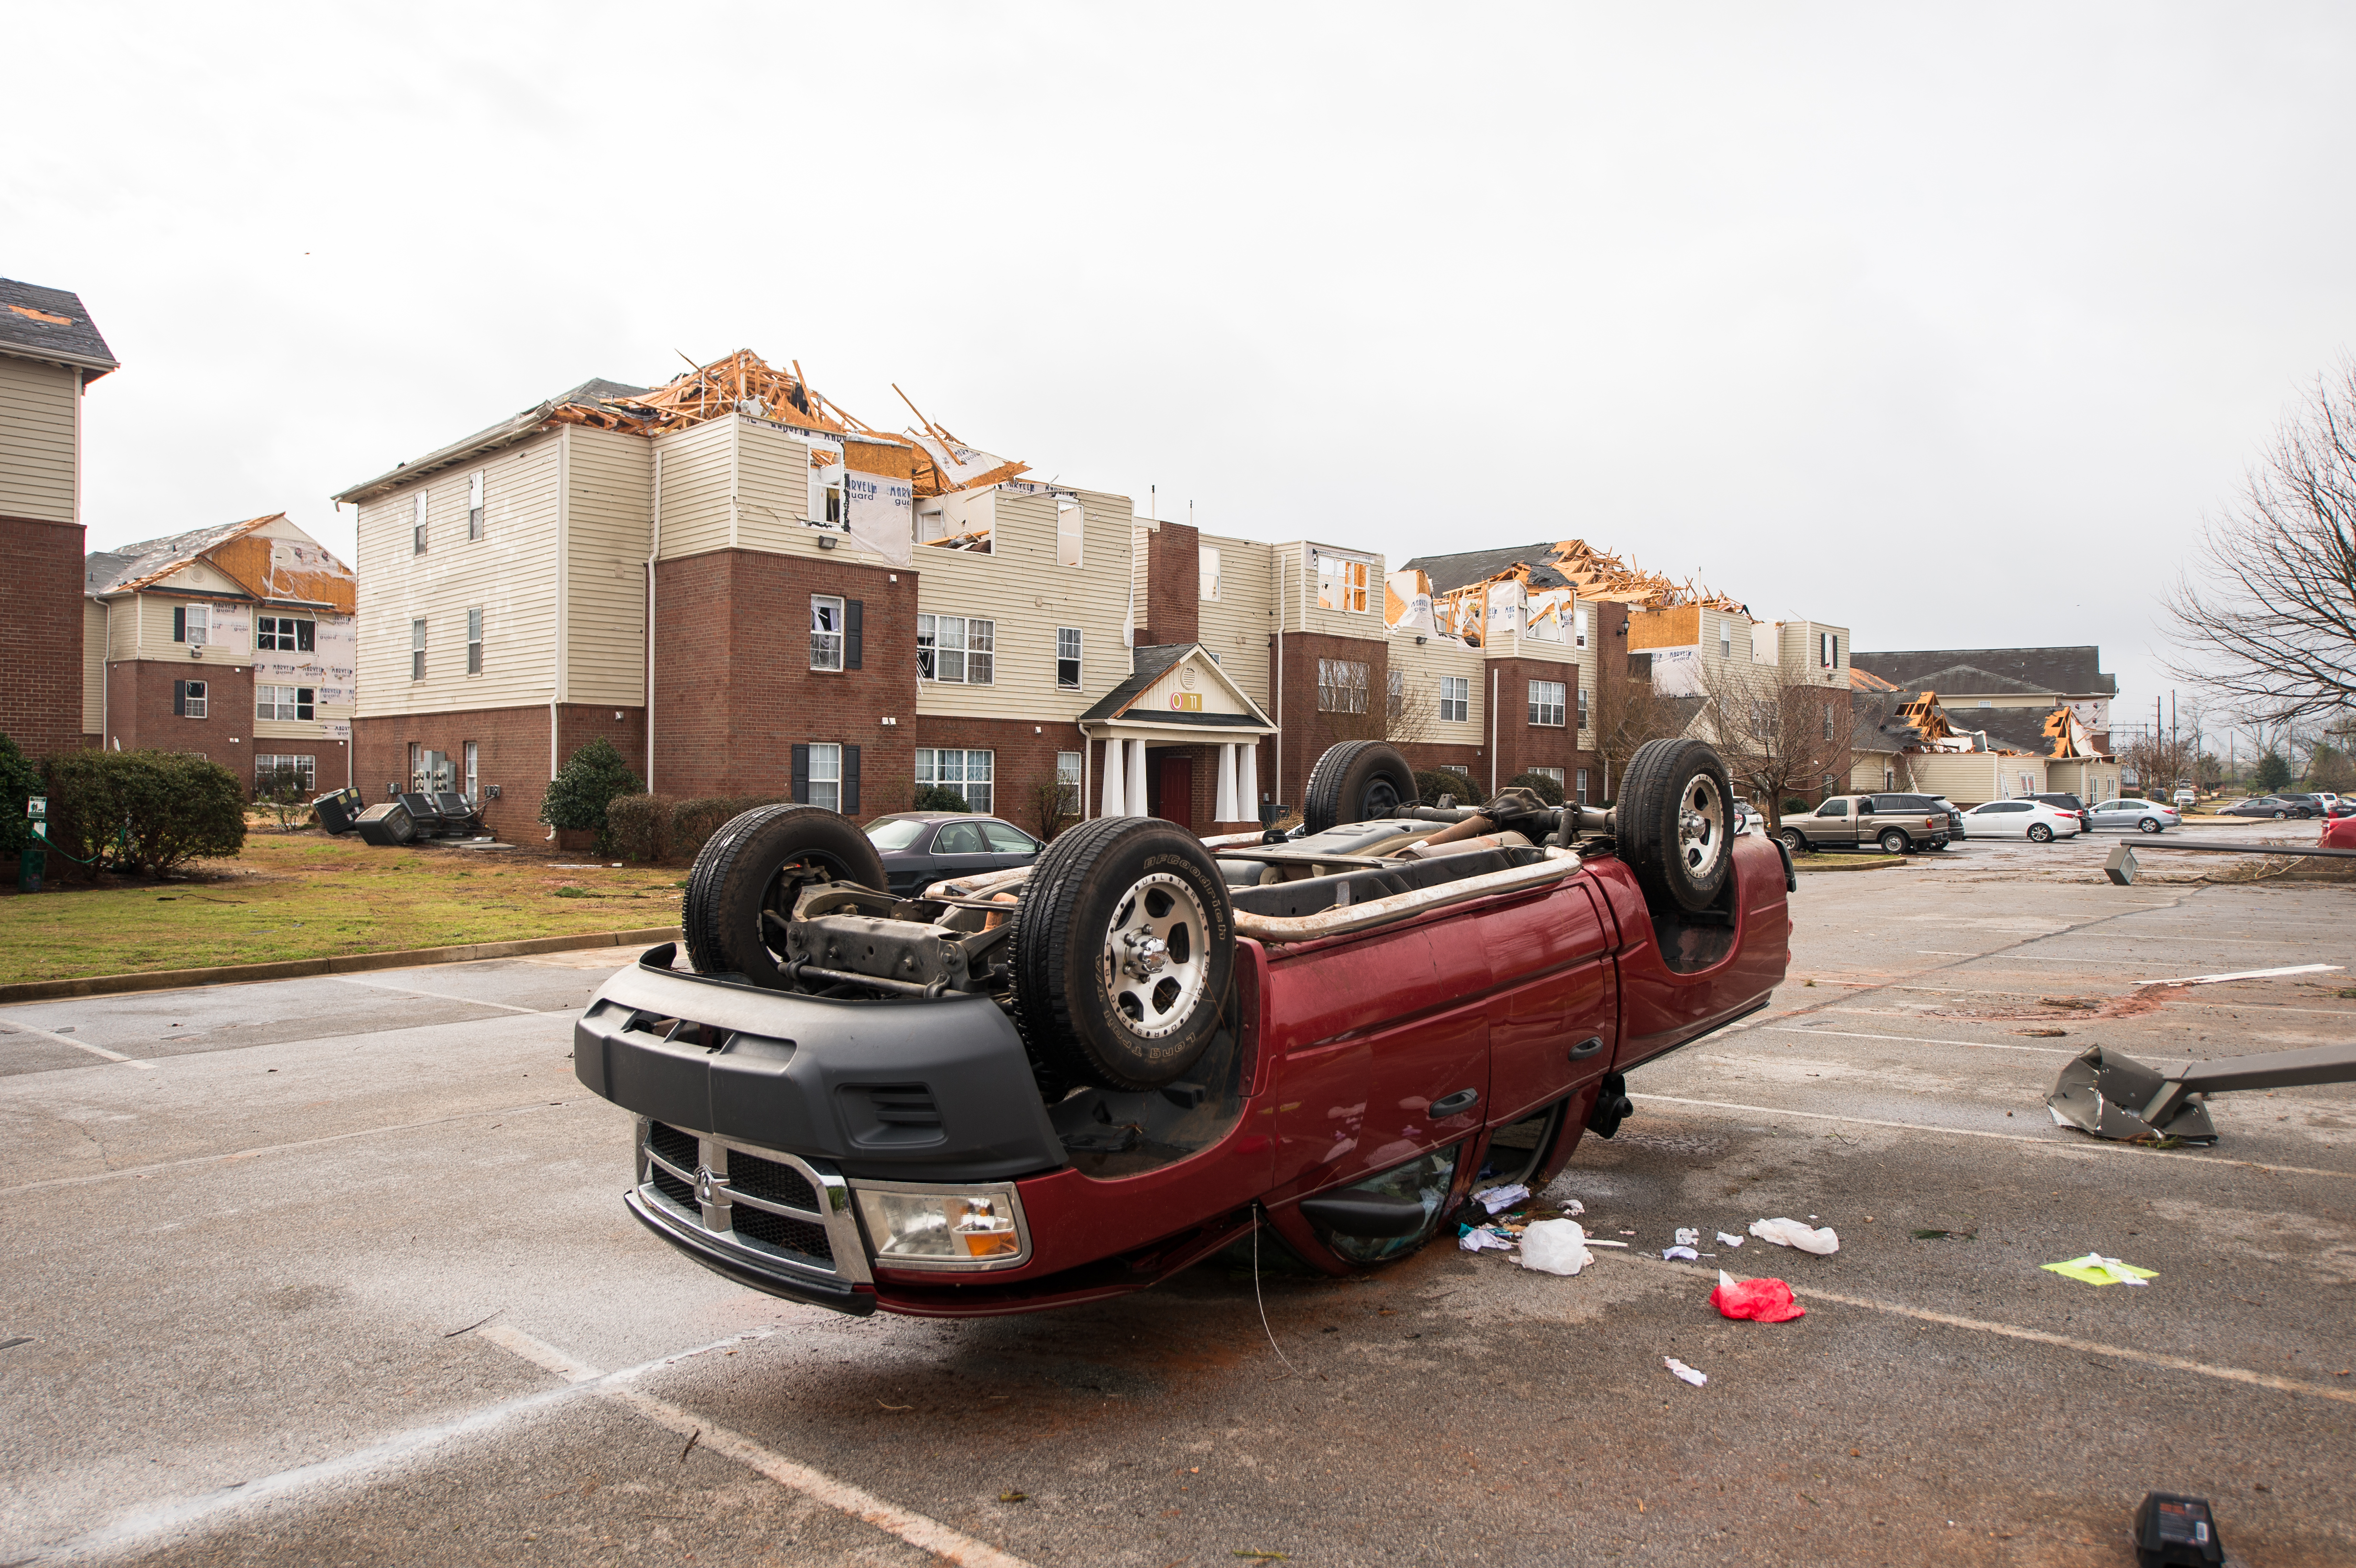 On Monday, March 19, 2018, Jacksonville was struck by an EF-3 tornado that ravaged parts of town and JSU's campus. (Matt Reynolds/JSU)